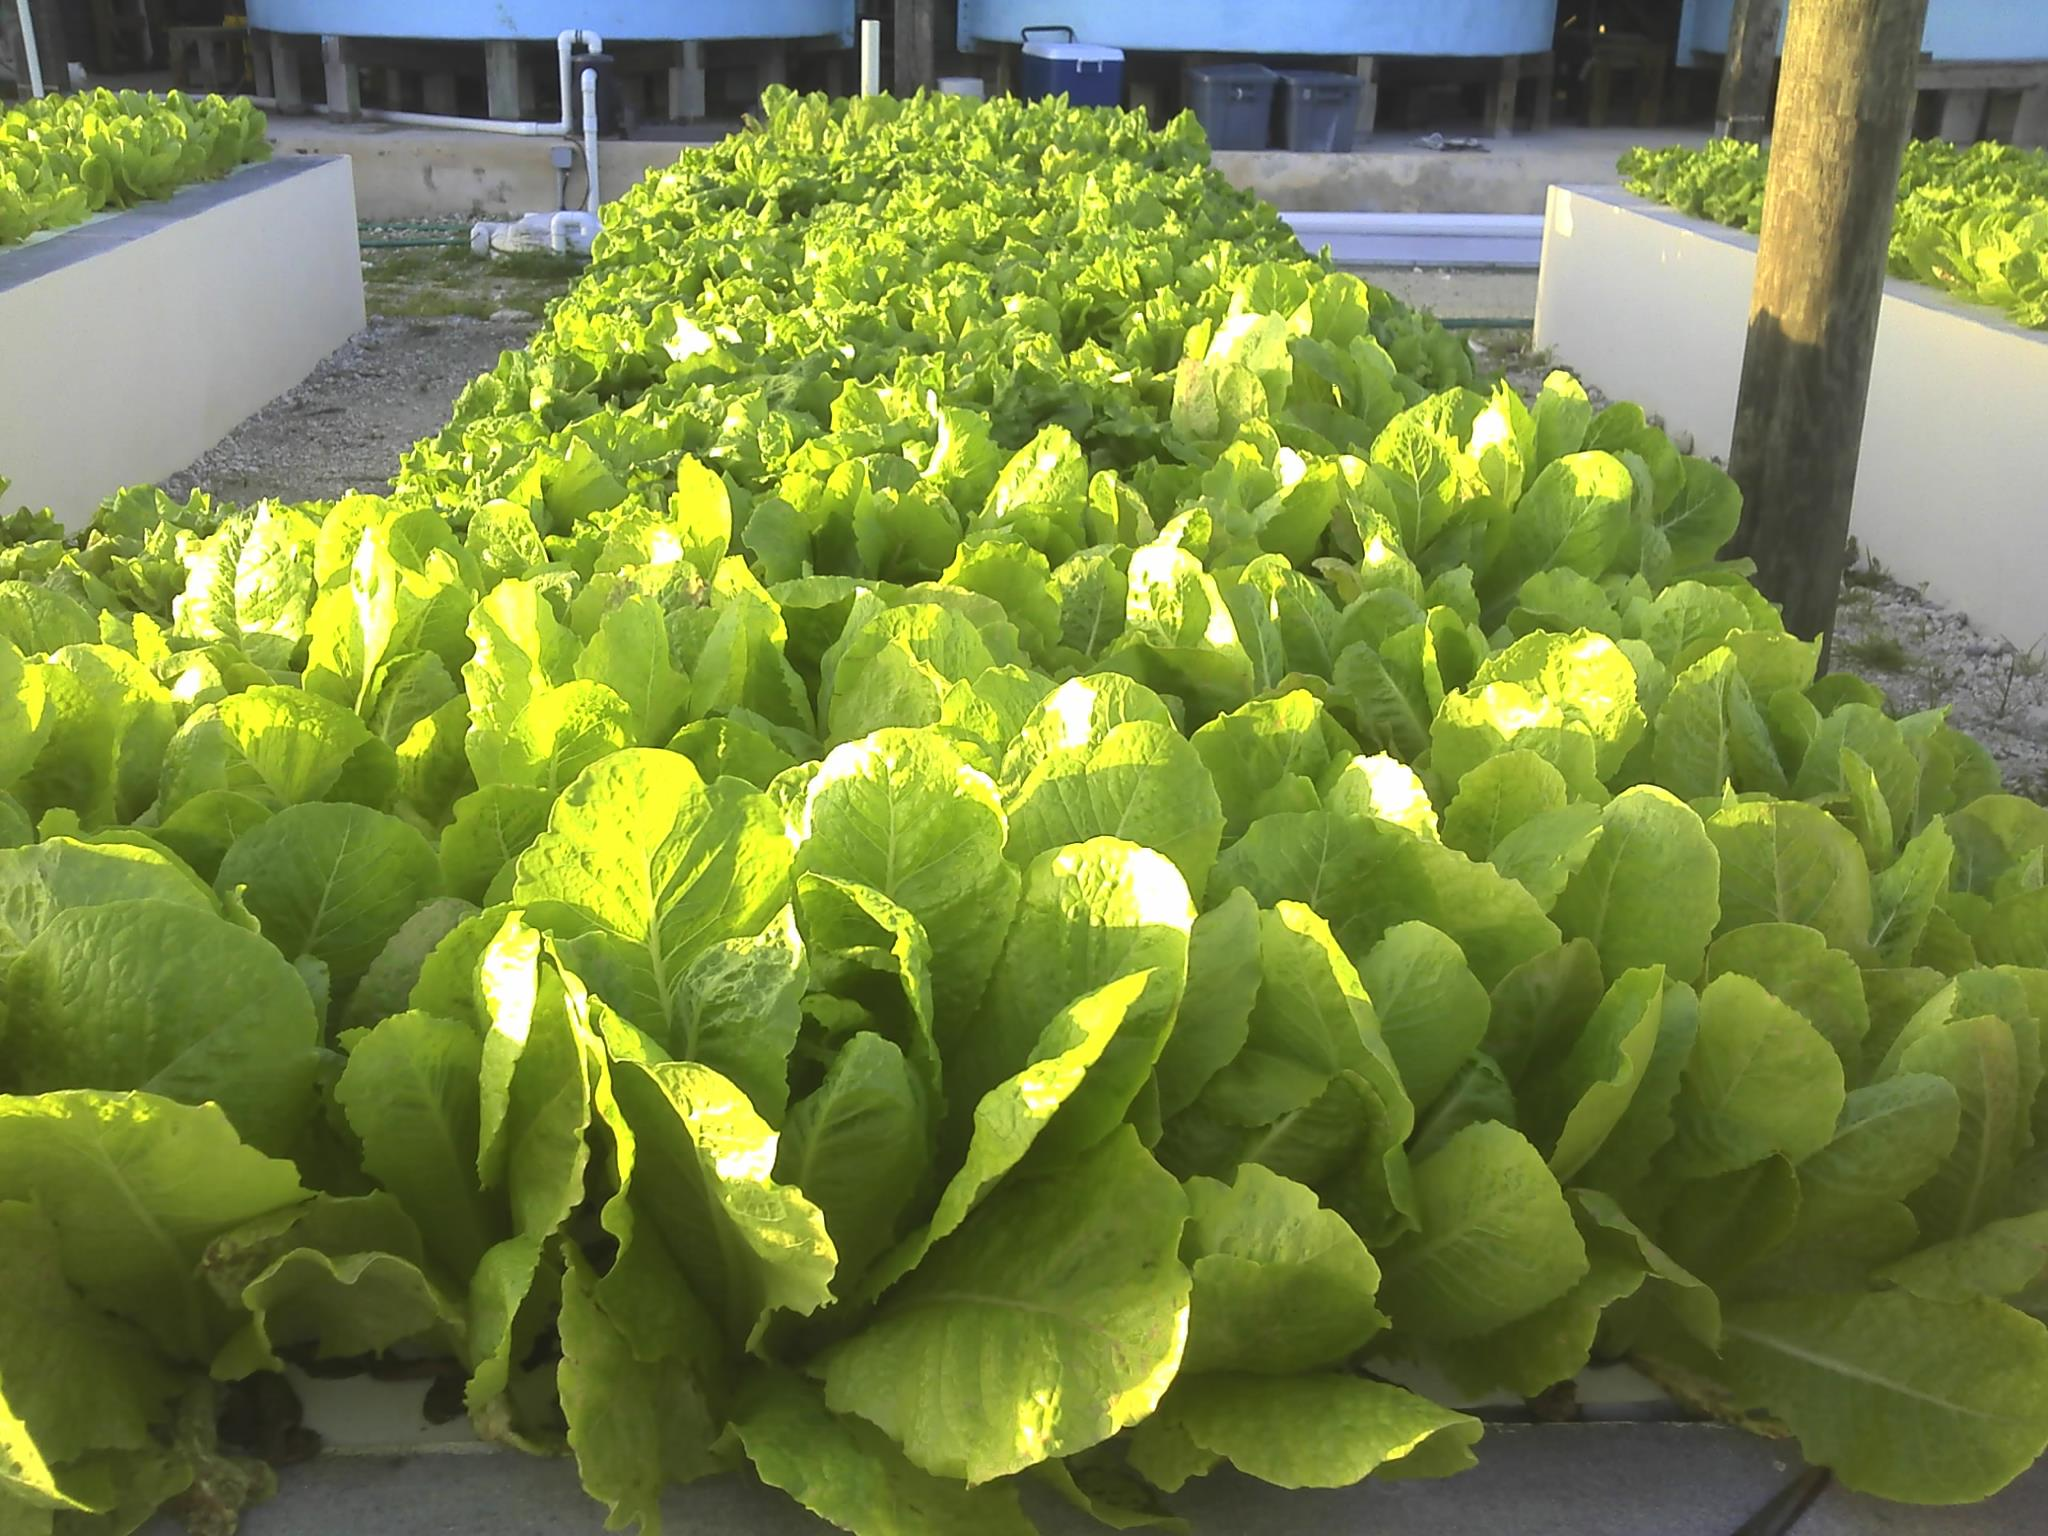 Aquaponics Lettuce Grow Beds, CEI